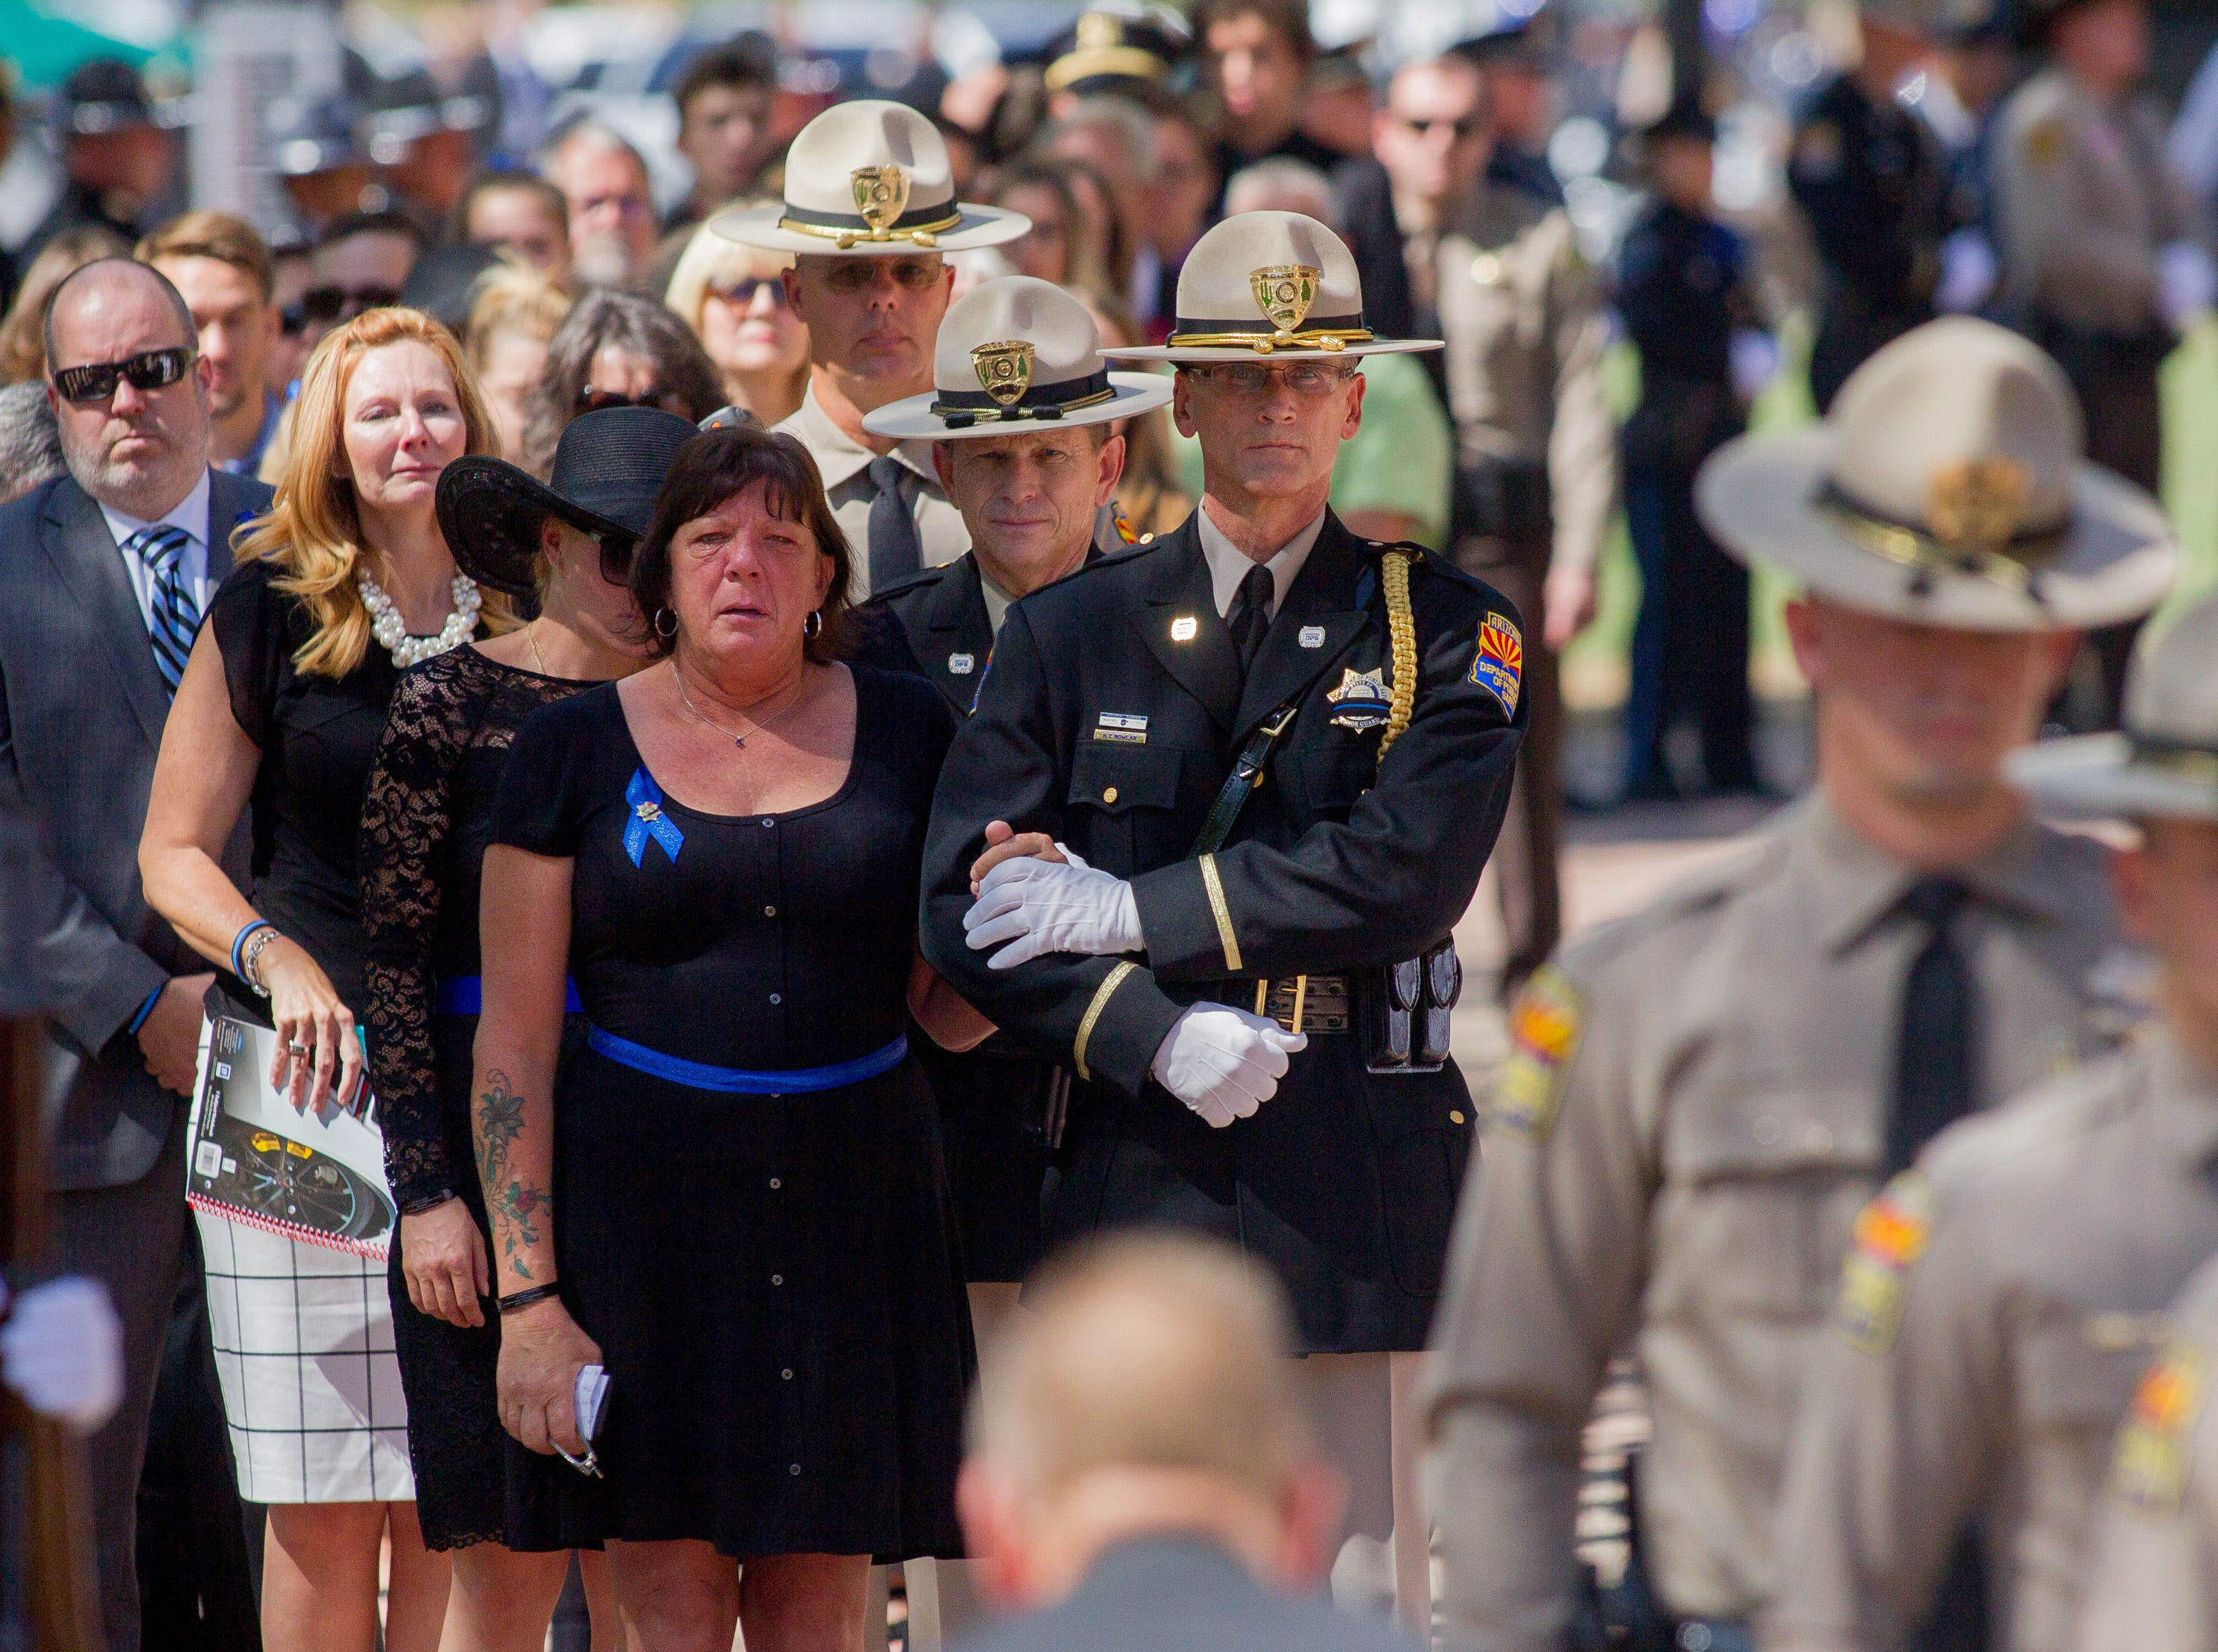 Debbie Edenhofer, mother of fallen DPS Trooper Tyler Edenhofer, is escorted in during the processional for his funeral on Aug. 3, 2018, at Christ's Church of the Valley in Peoria.